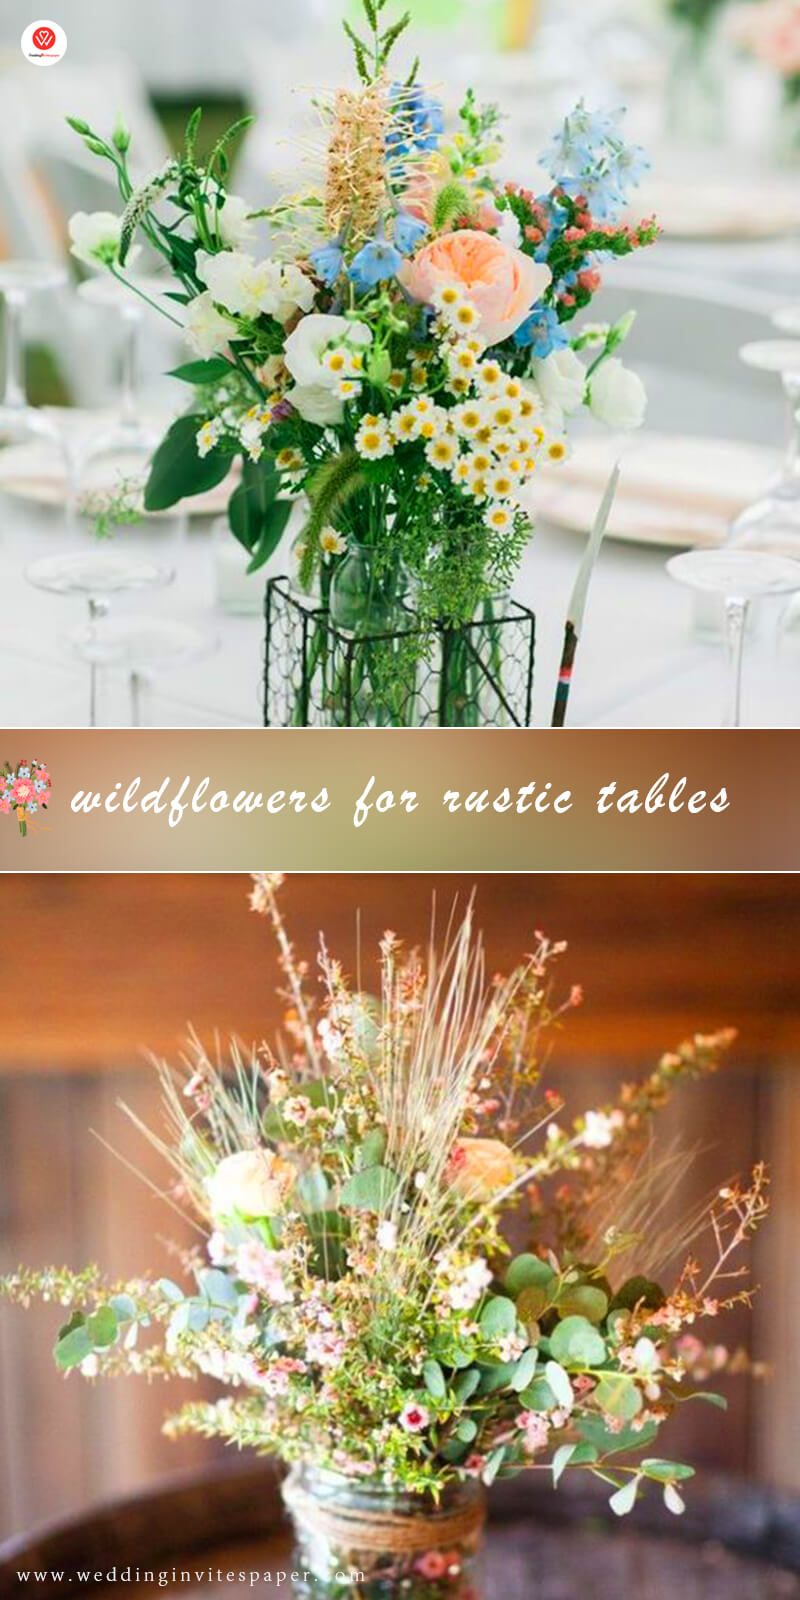 21 wildflowers for rustic tables.jpg